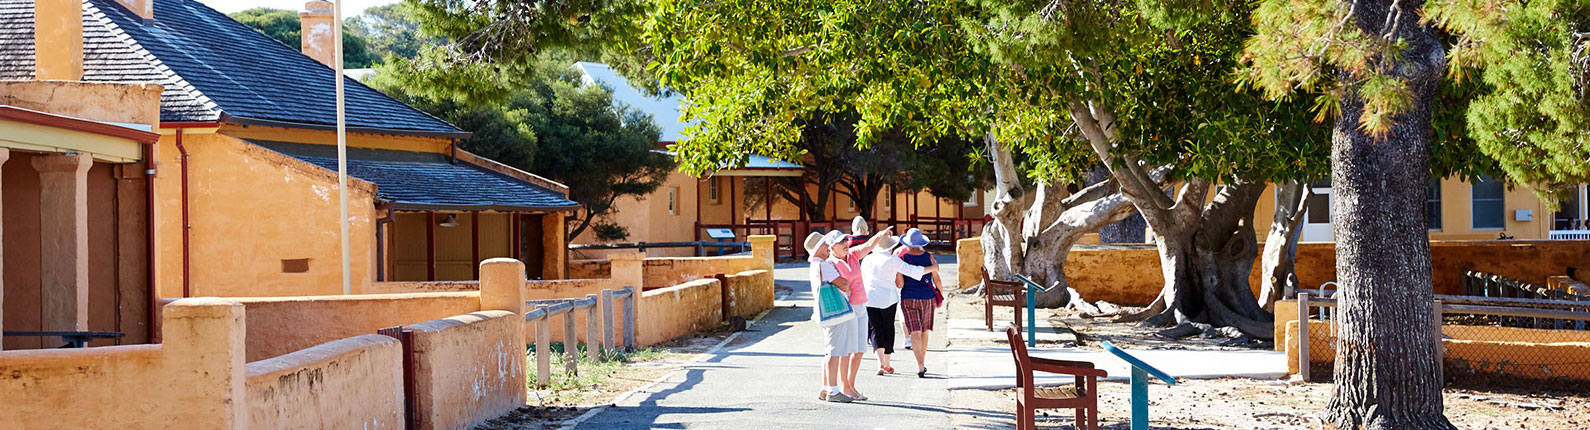 Upcoming events at Rottnest Island